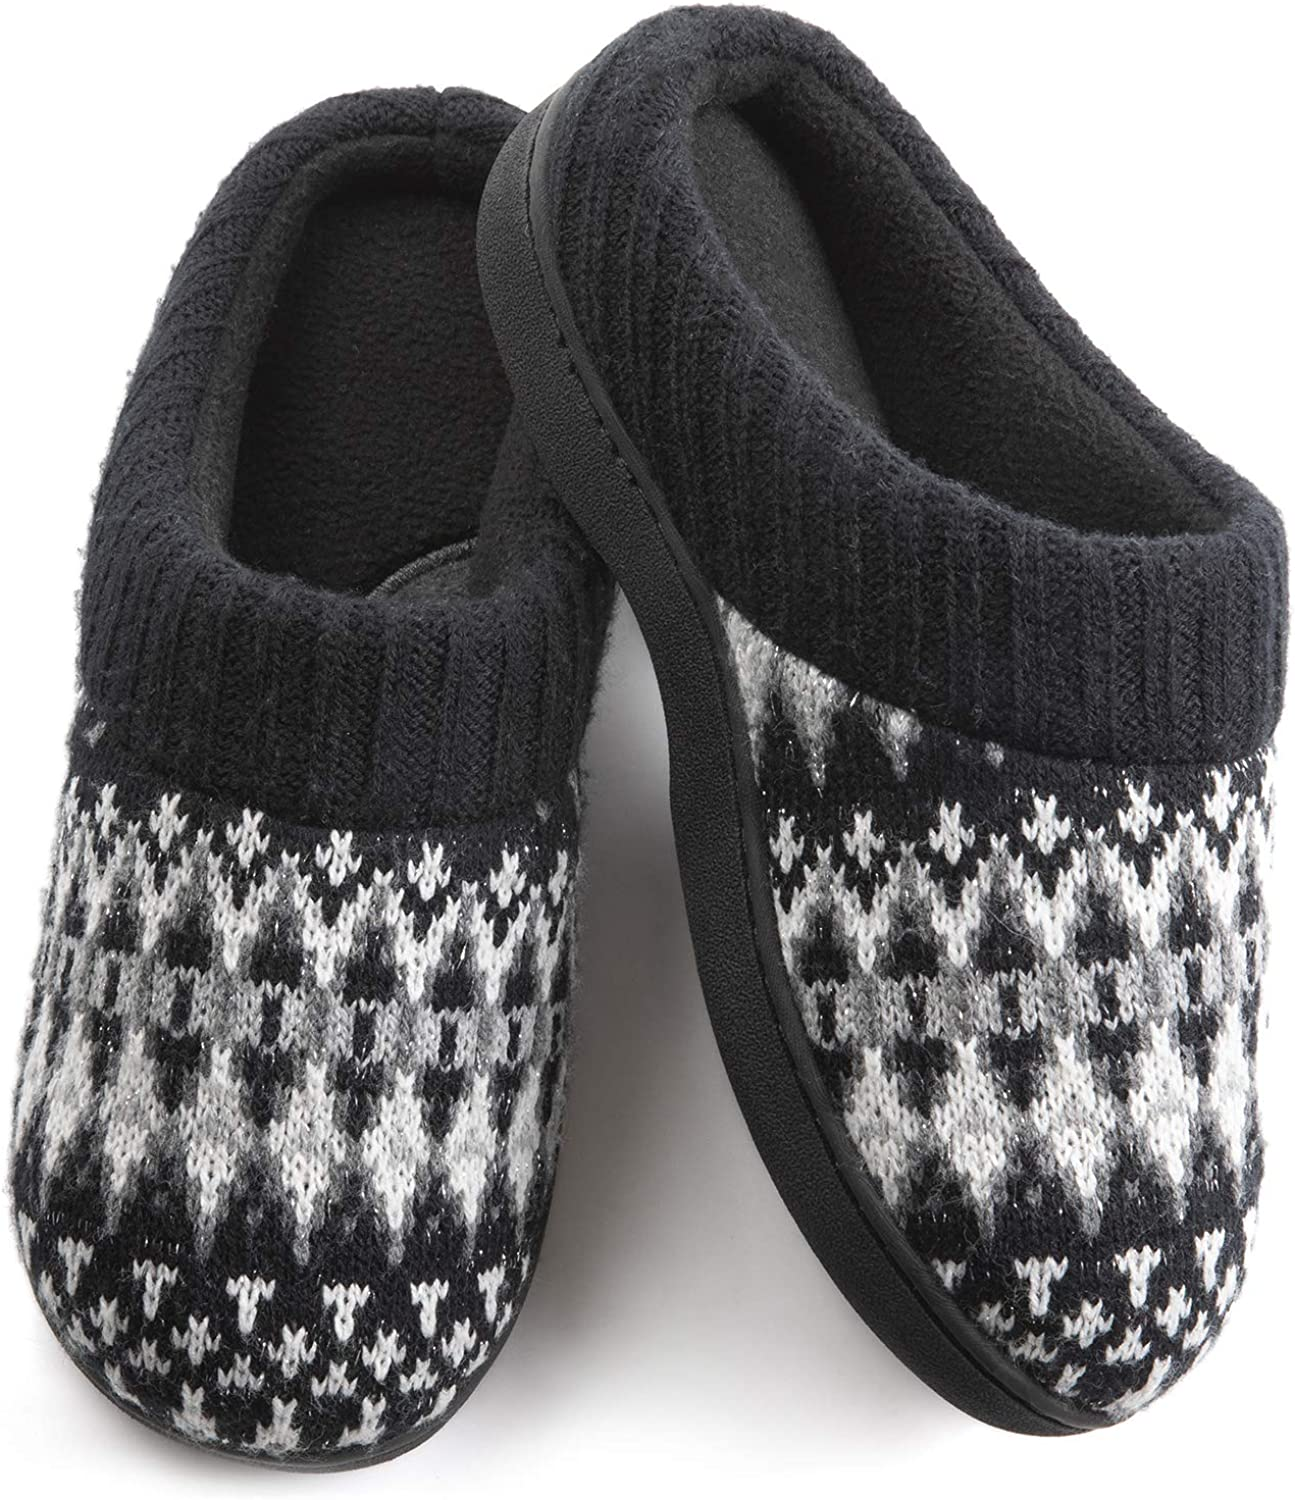 Wishcotton Womens Cozy Breathable Christmas Style Memory Foam Slippers Nonslip Rubber Sole House Shoes